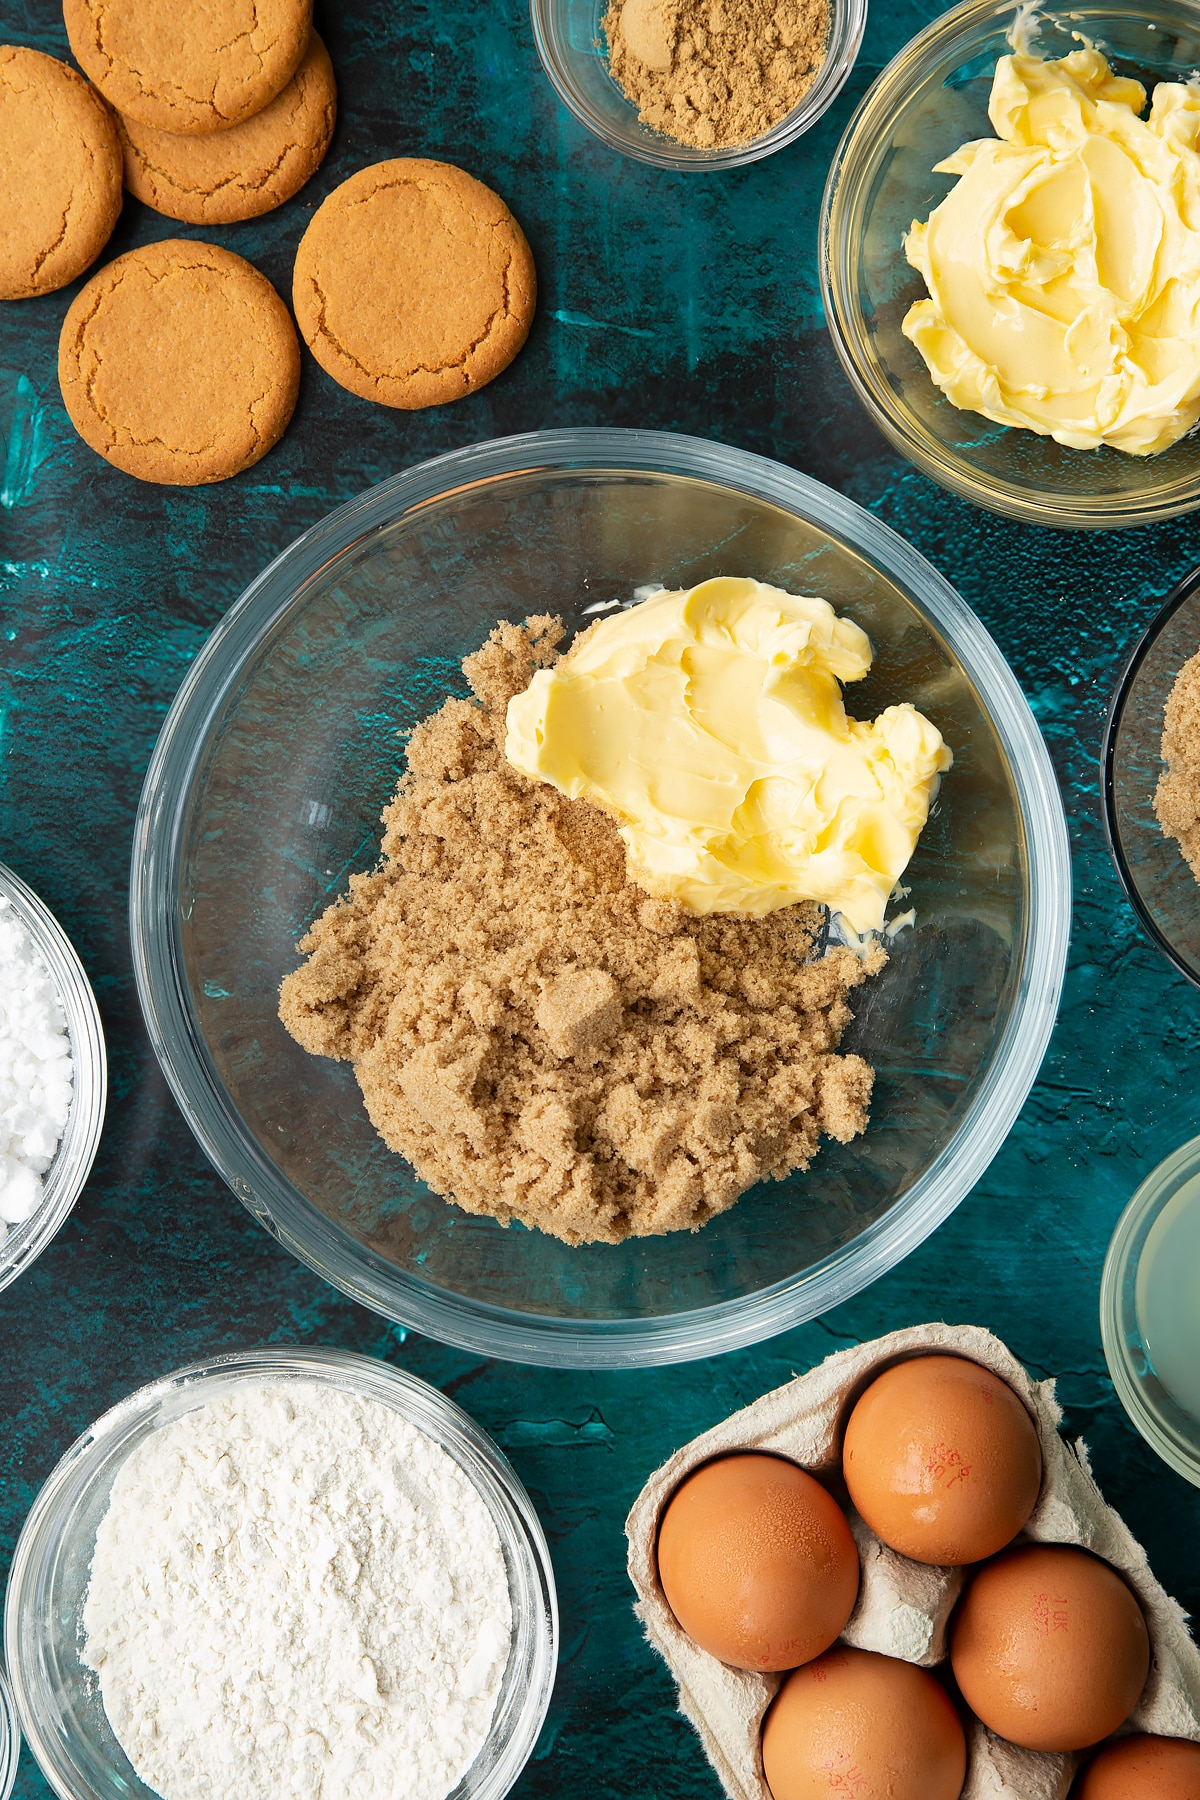 Butter and brown sugar in a glass mixing bowl. Ingredients to make gingerbread donuts surround the bowl.